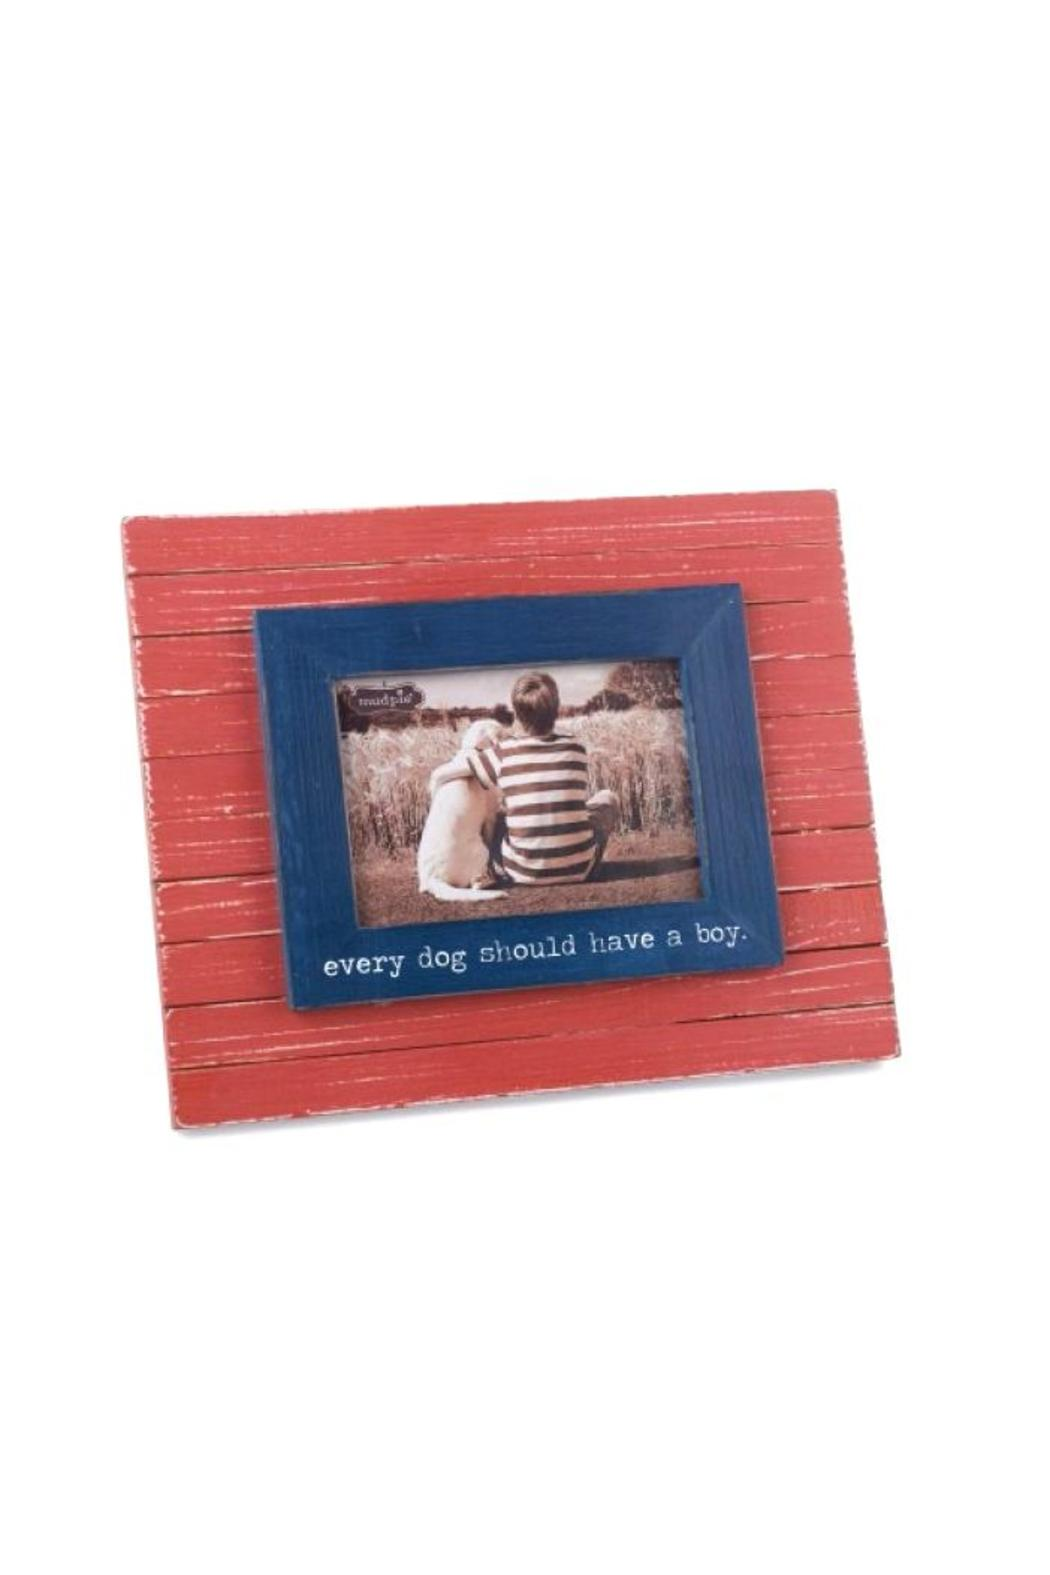 Mud Pie Dog Needs Boy Frame From Kentucky By Gracious Me